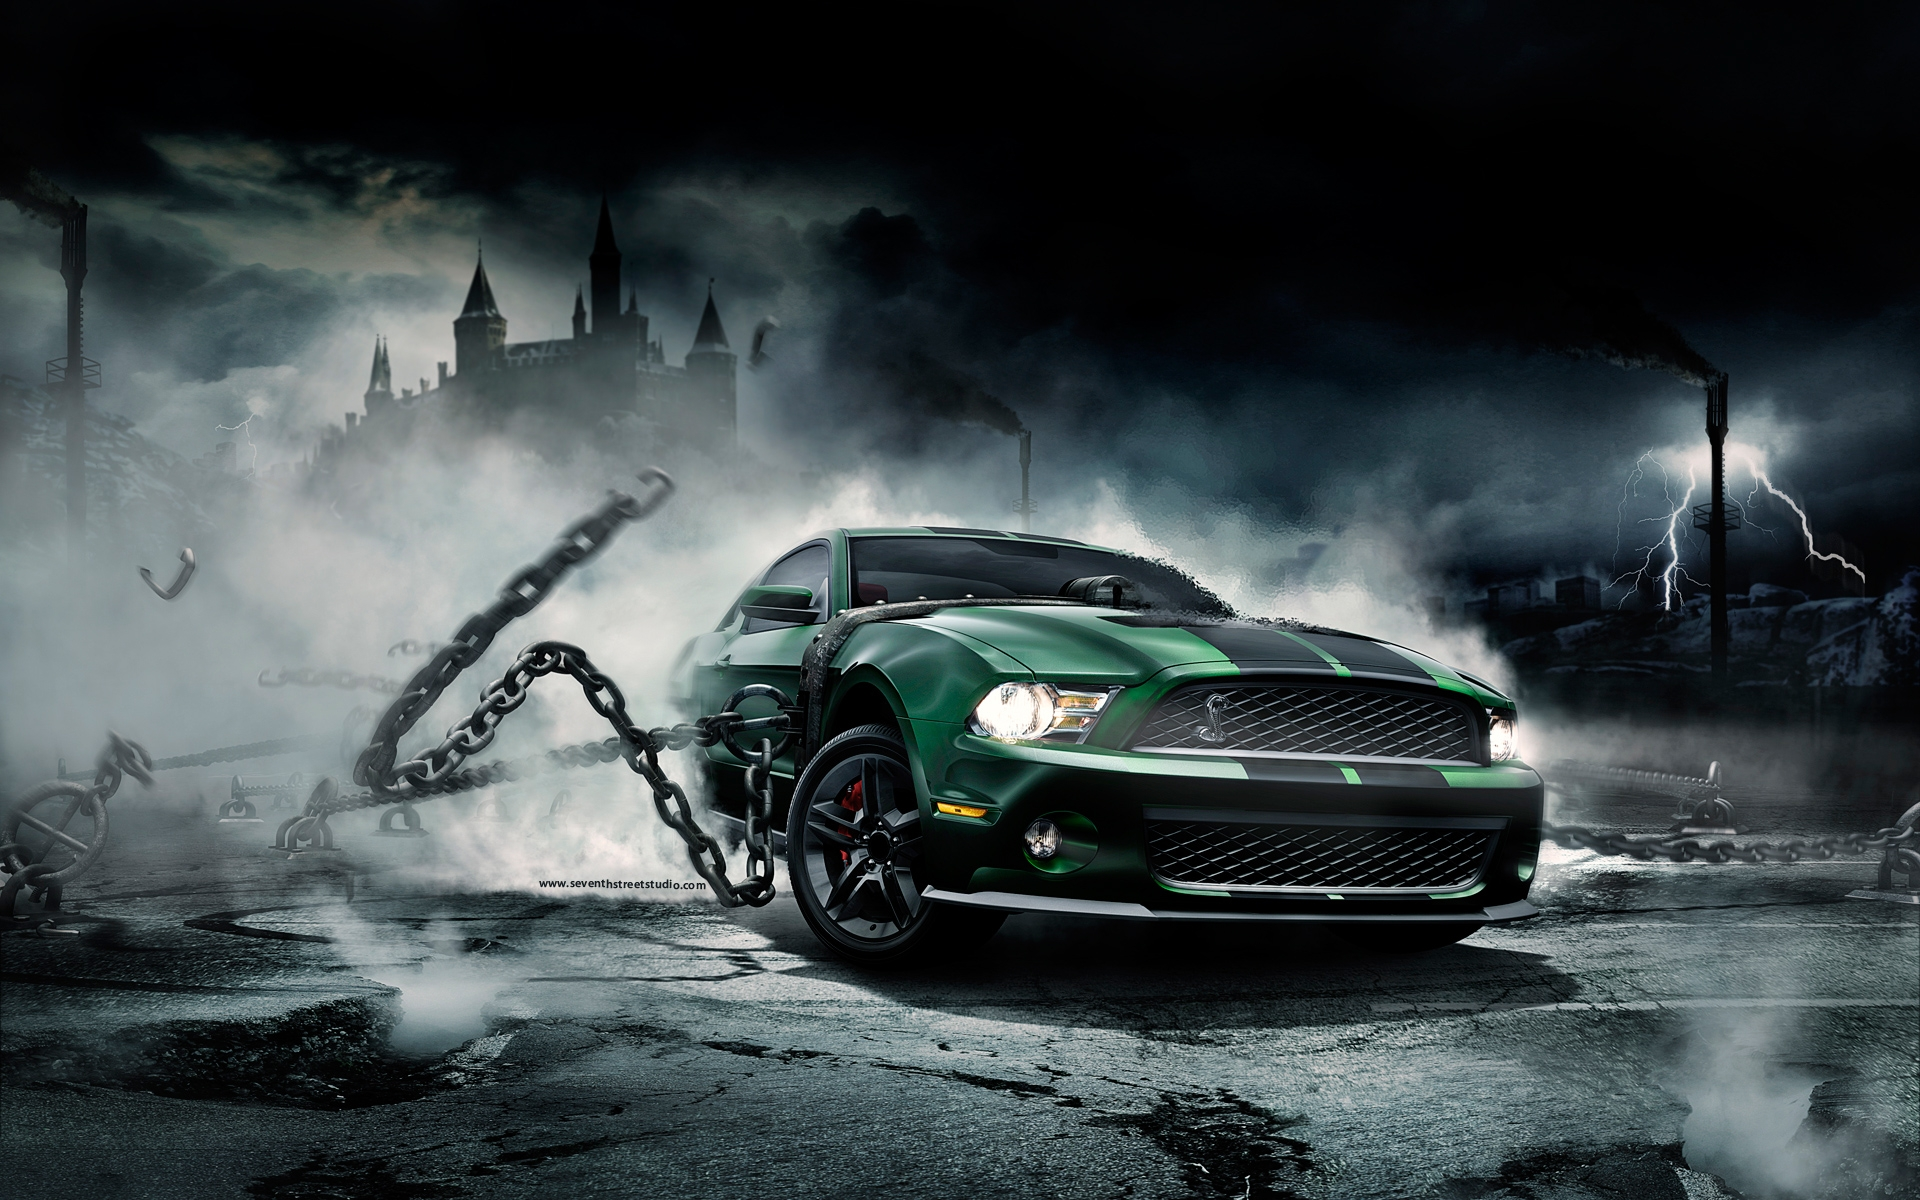 1001 ford mustang hd wallpapers | background images - wallpaper abyss